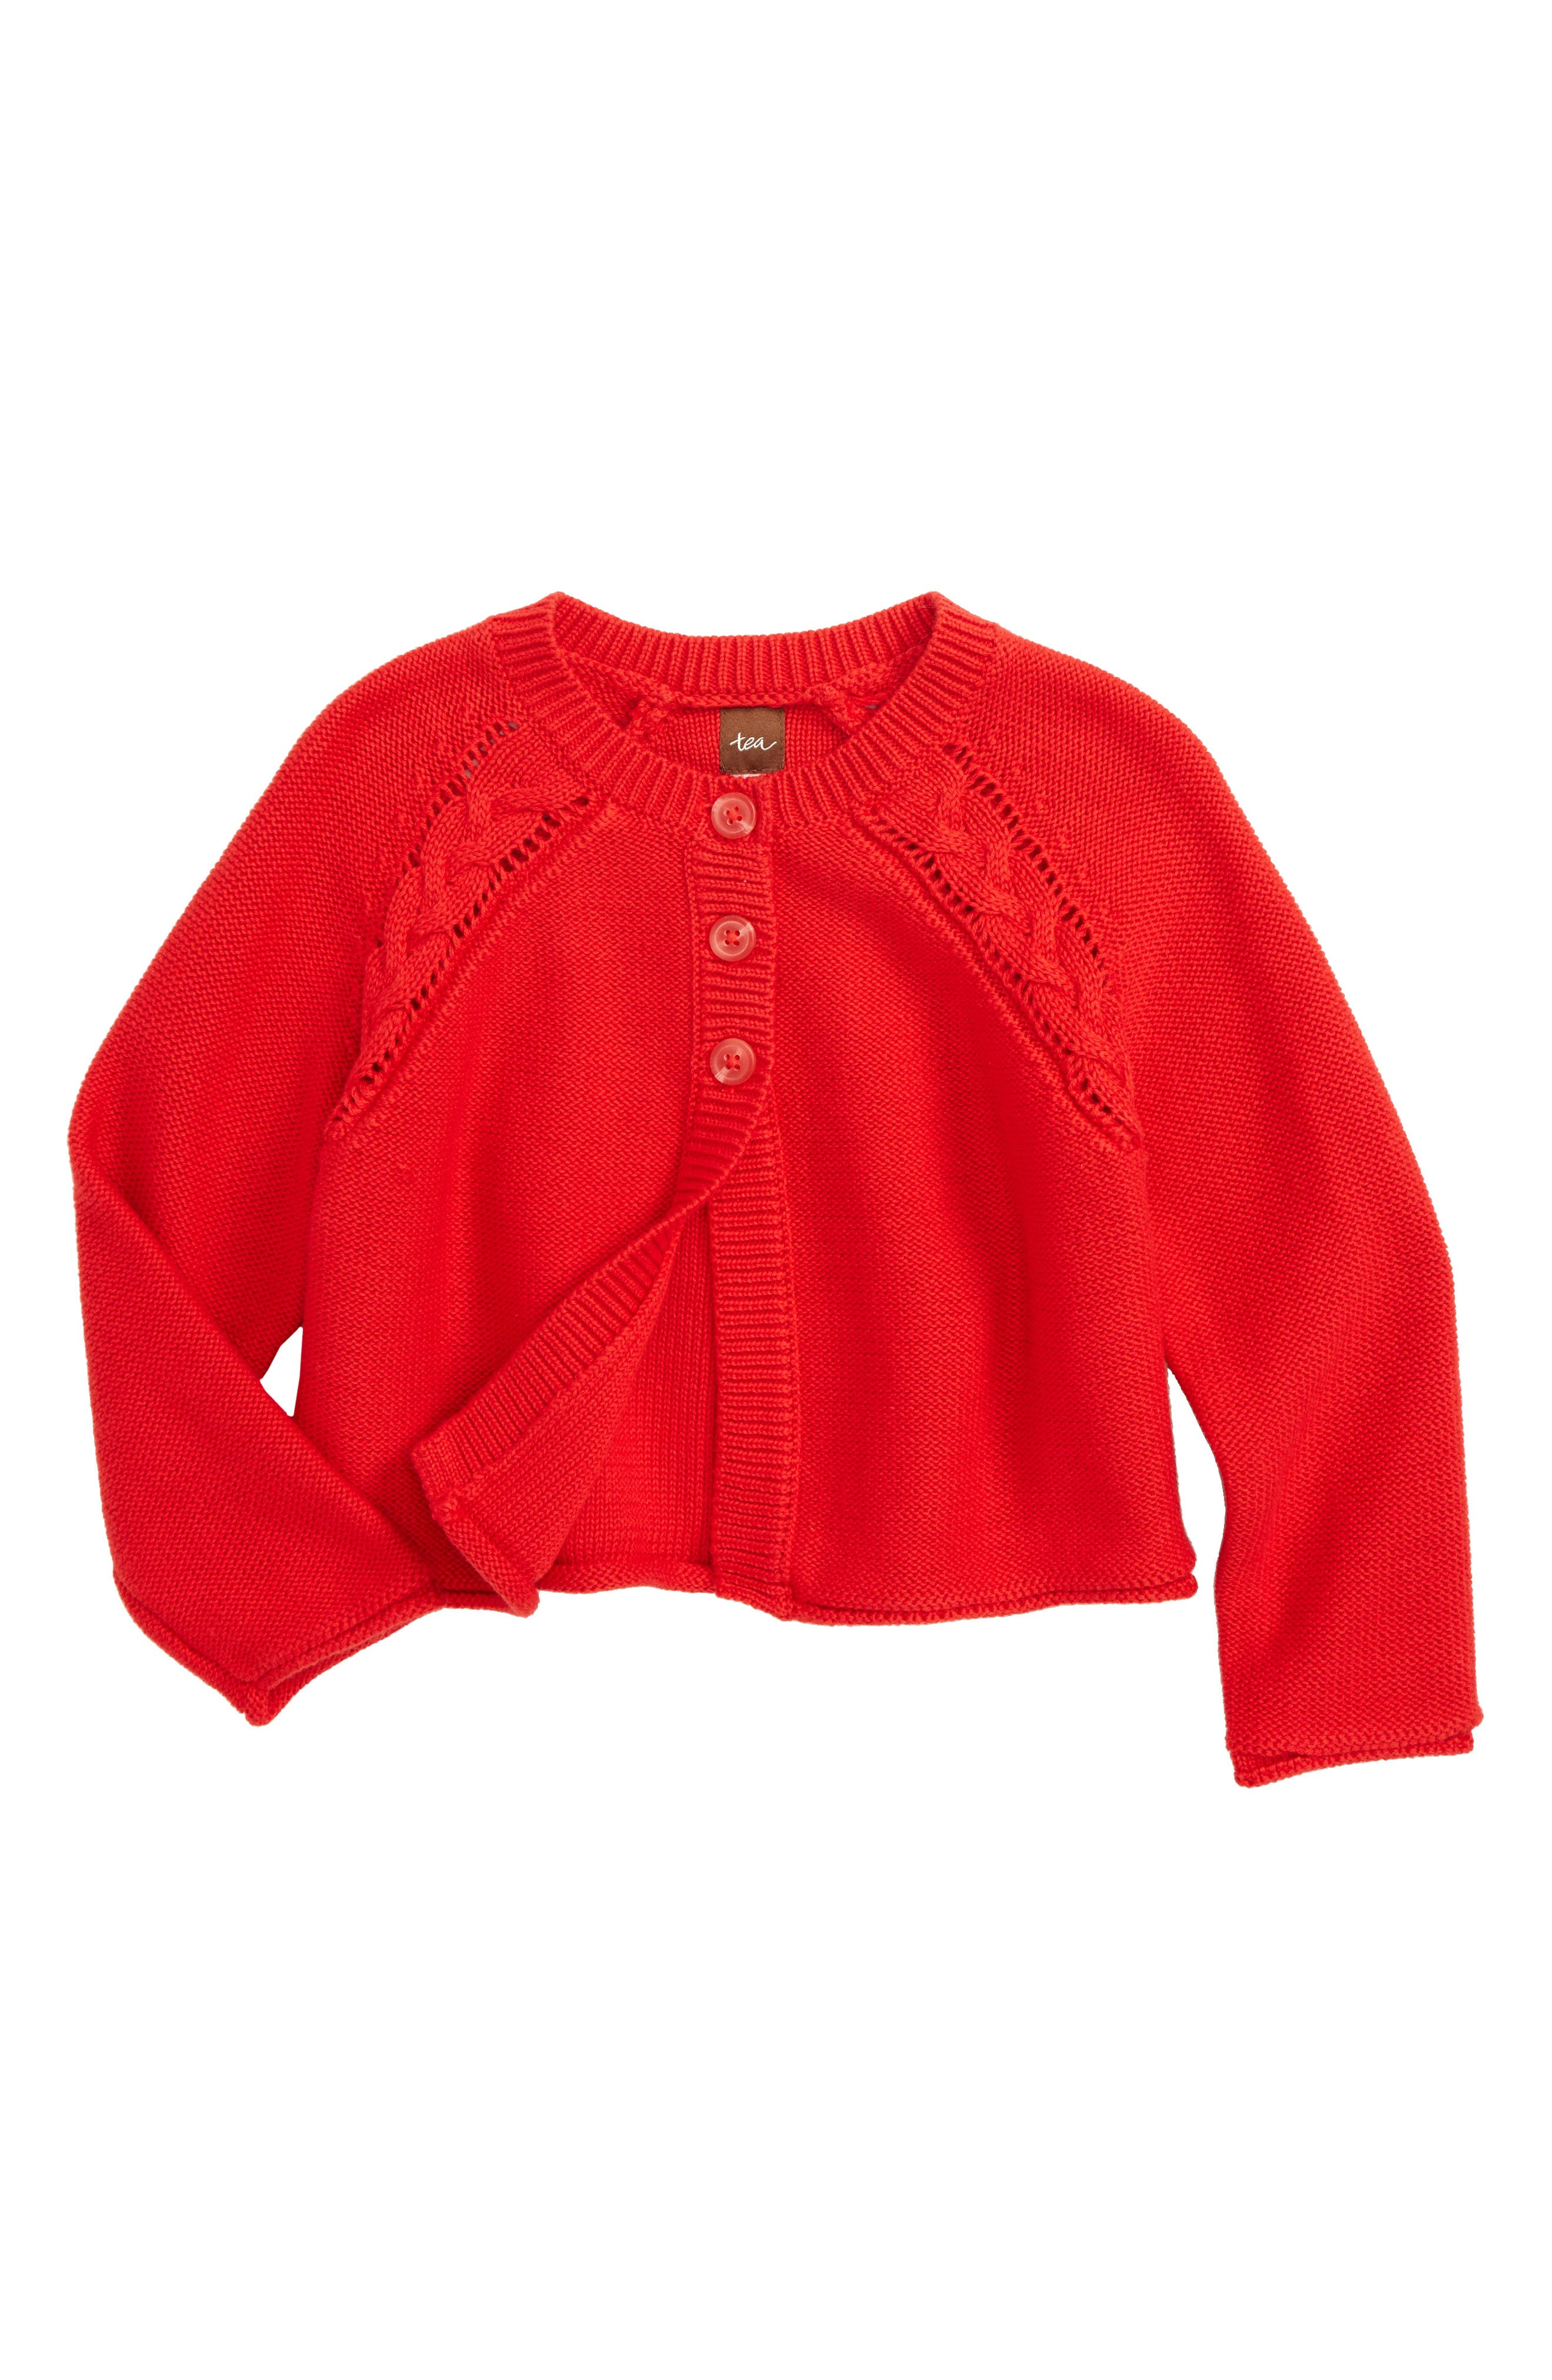 Alternate Image 1 Selected - Tea Collection Agatha Cable Cardigan (Toddler Girls, Little Girls & Big Girls)